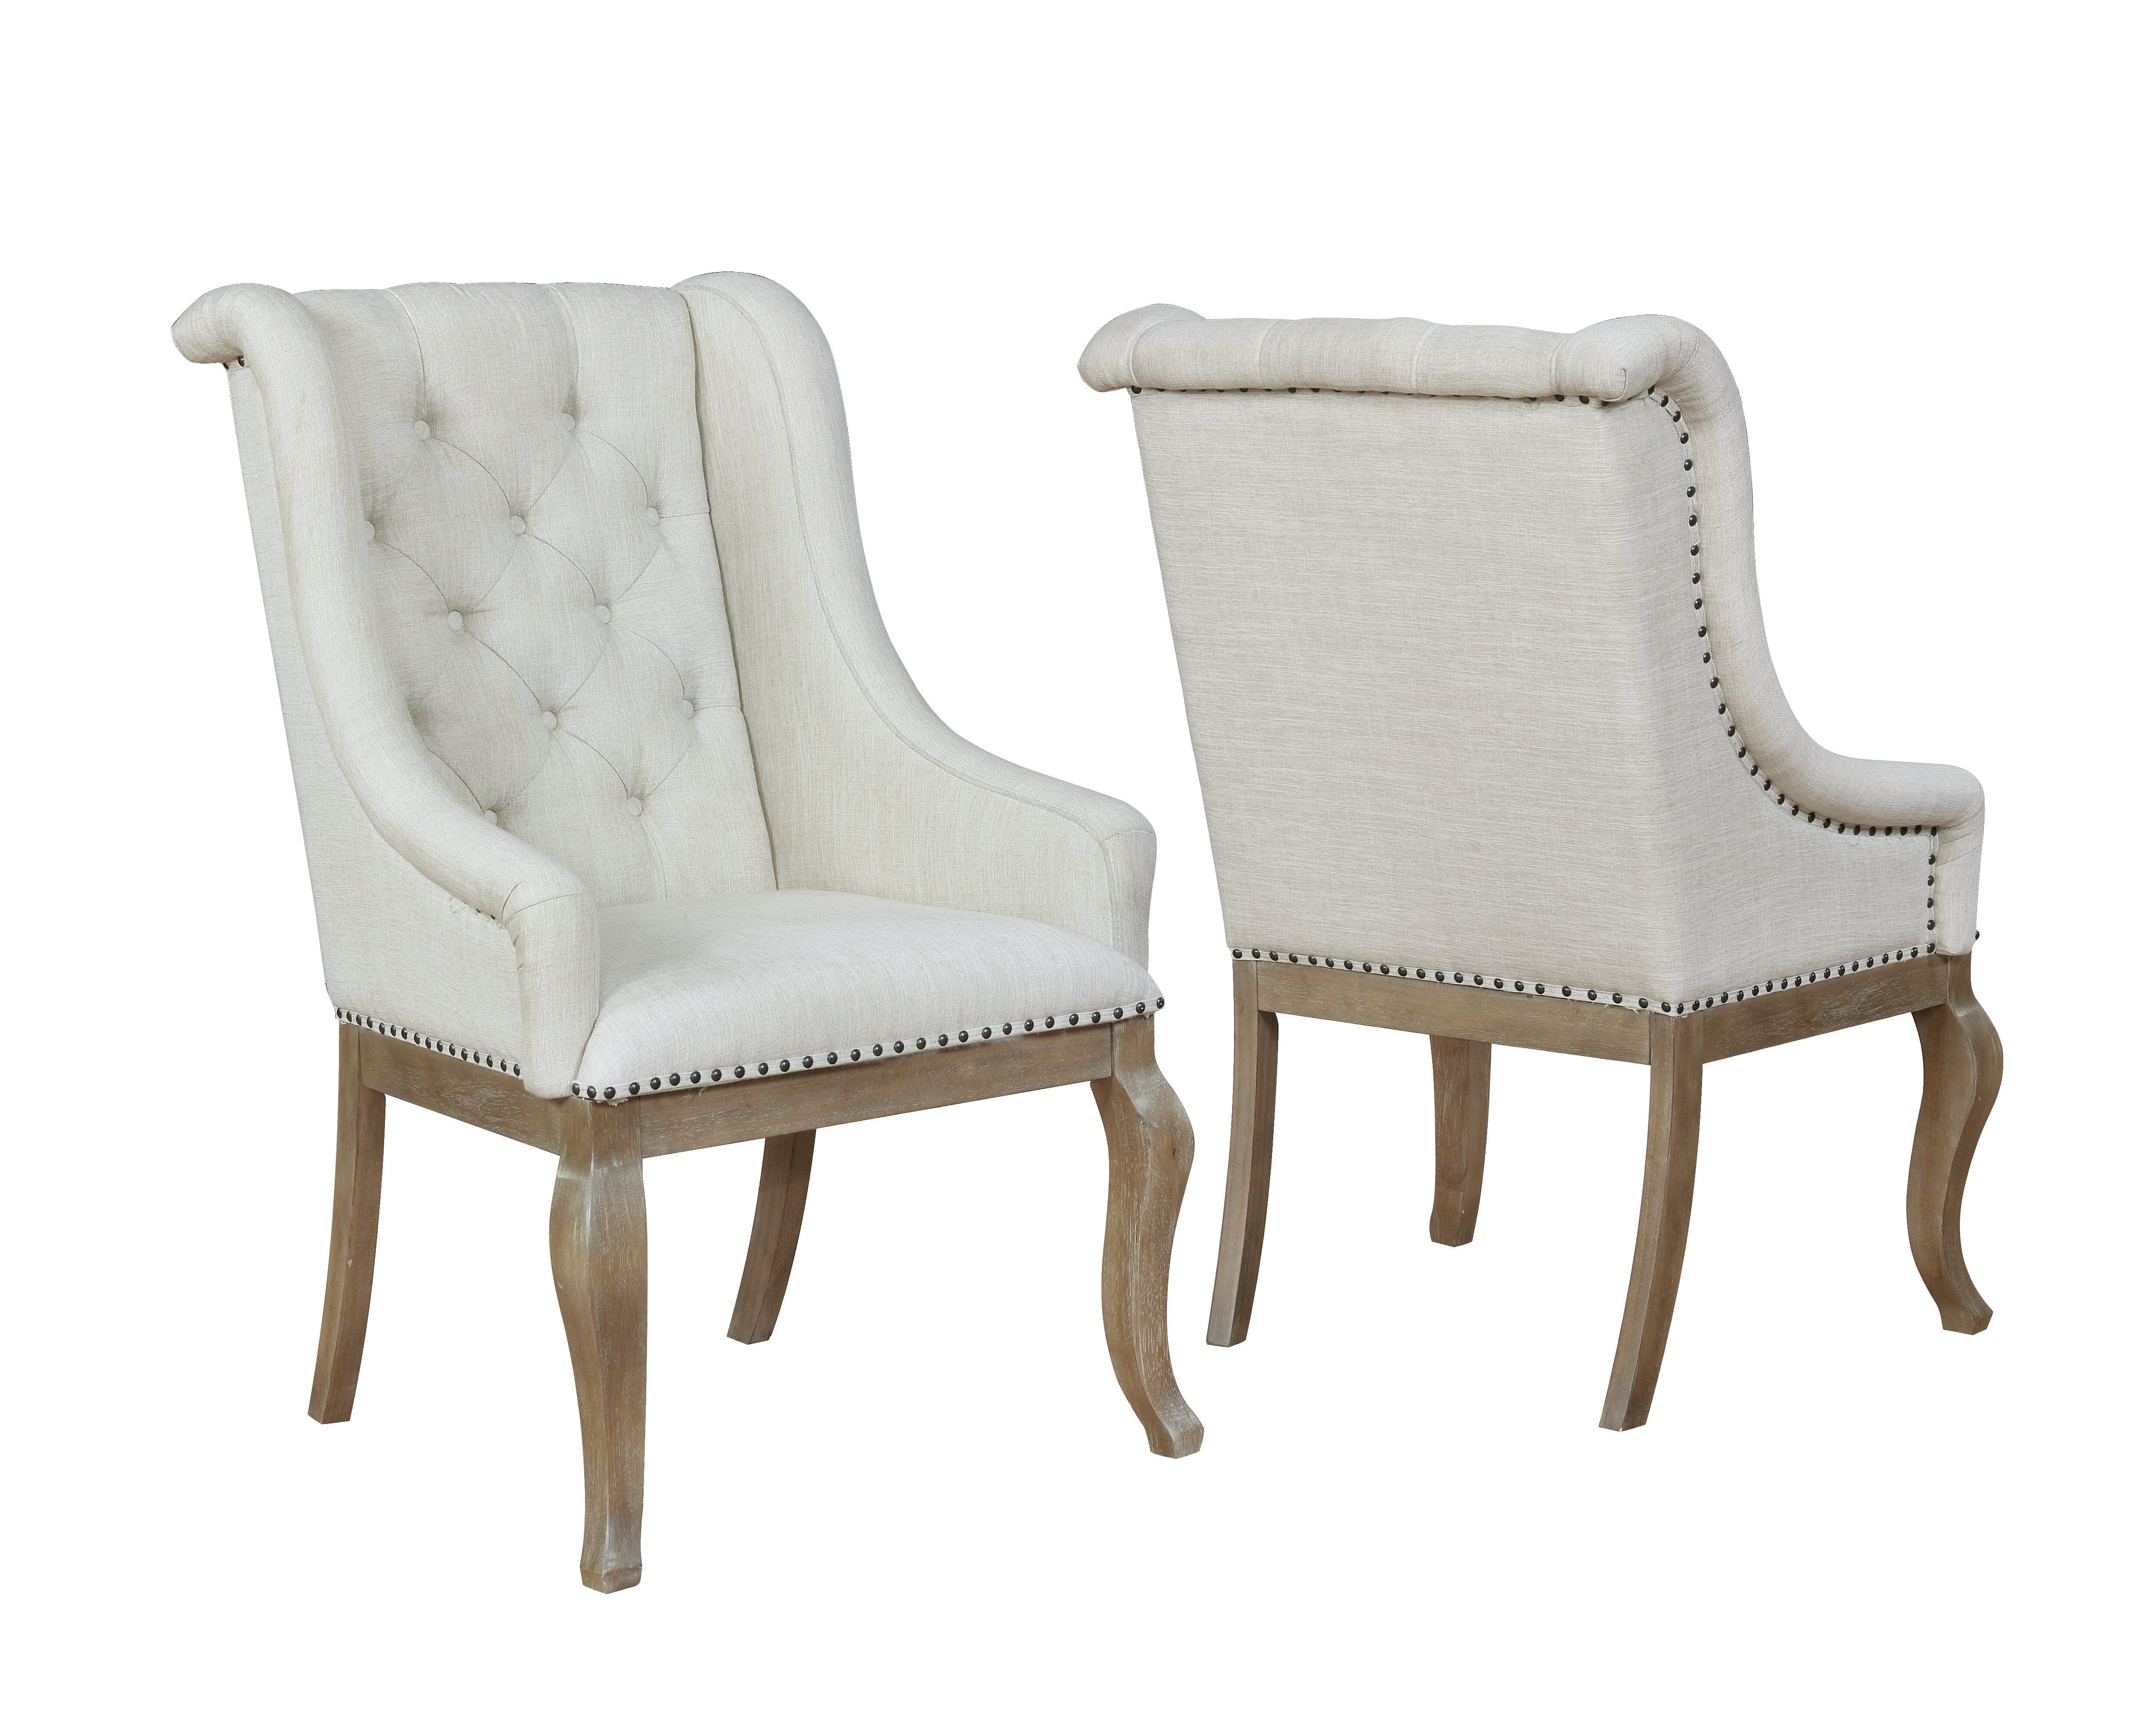 brockway tufted upholstered dining chair in cream